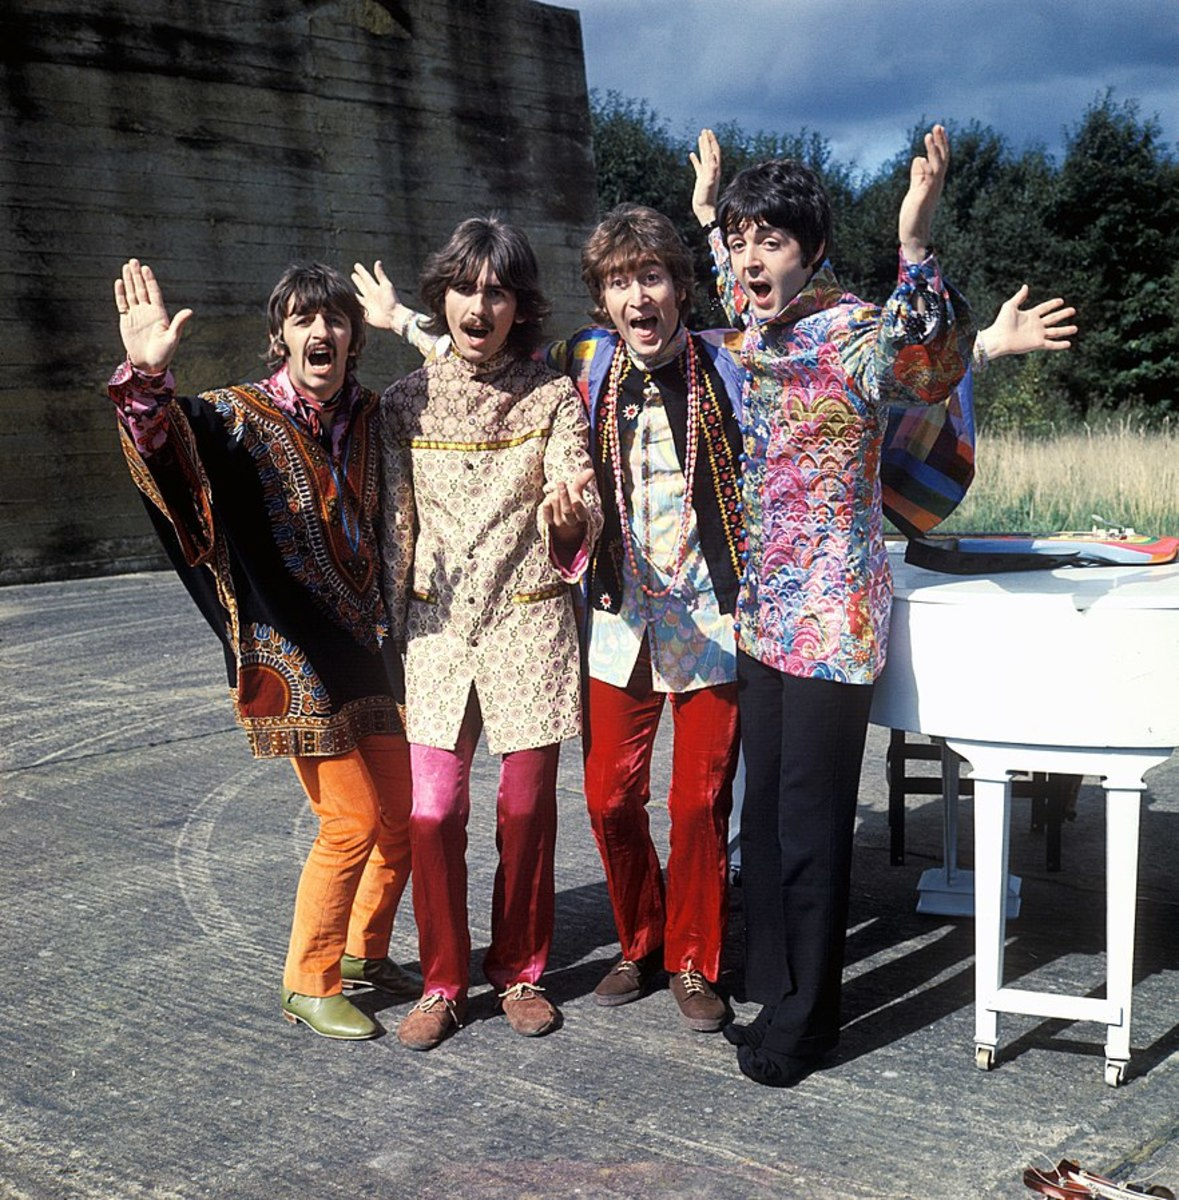 Press photo of The Beatles during Magical Mystery Tour.